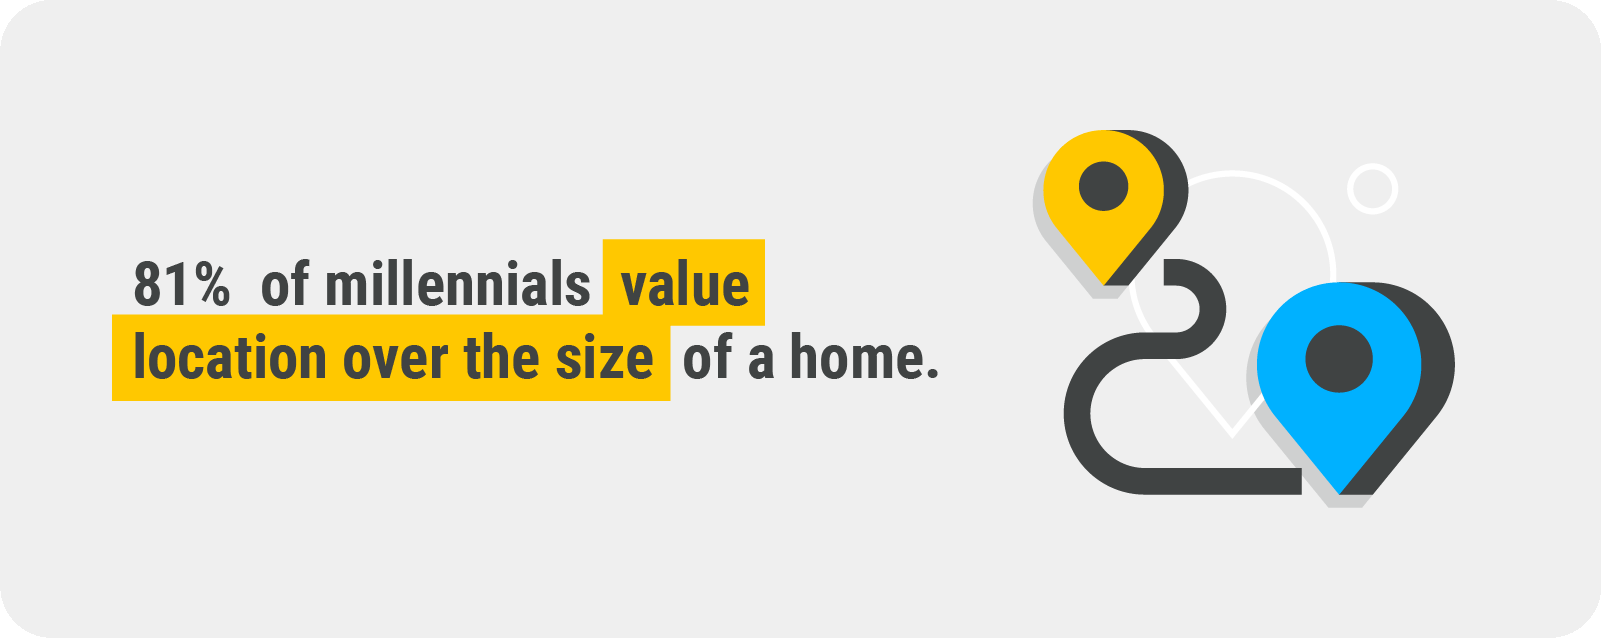 value location over size